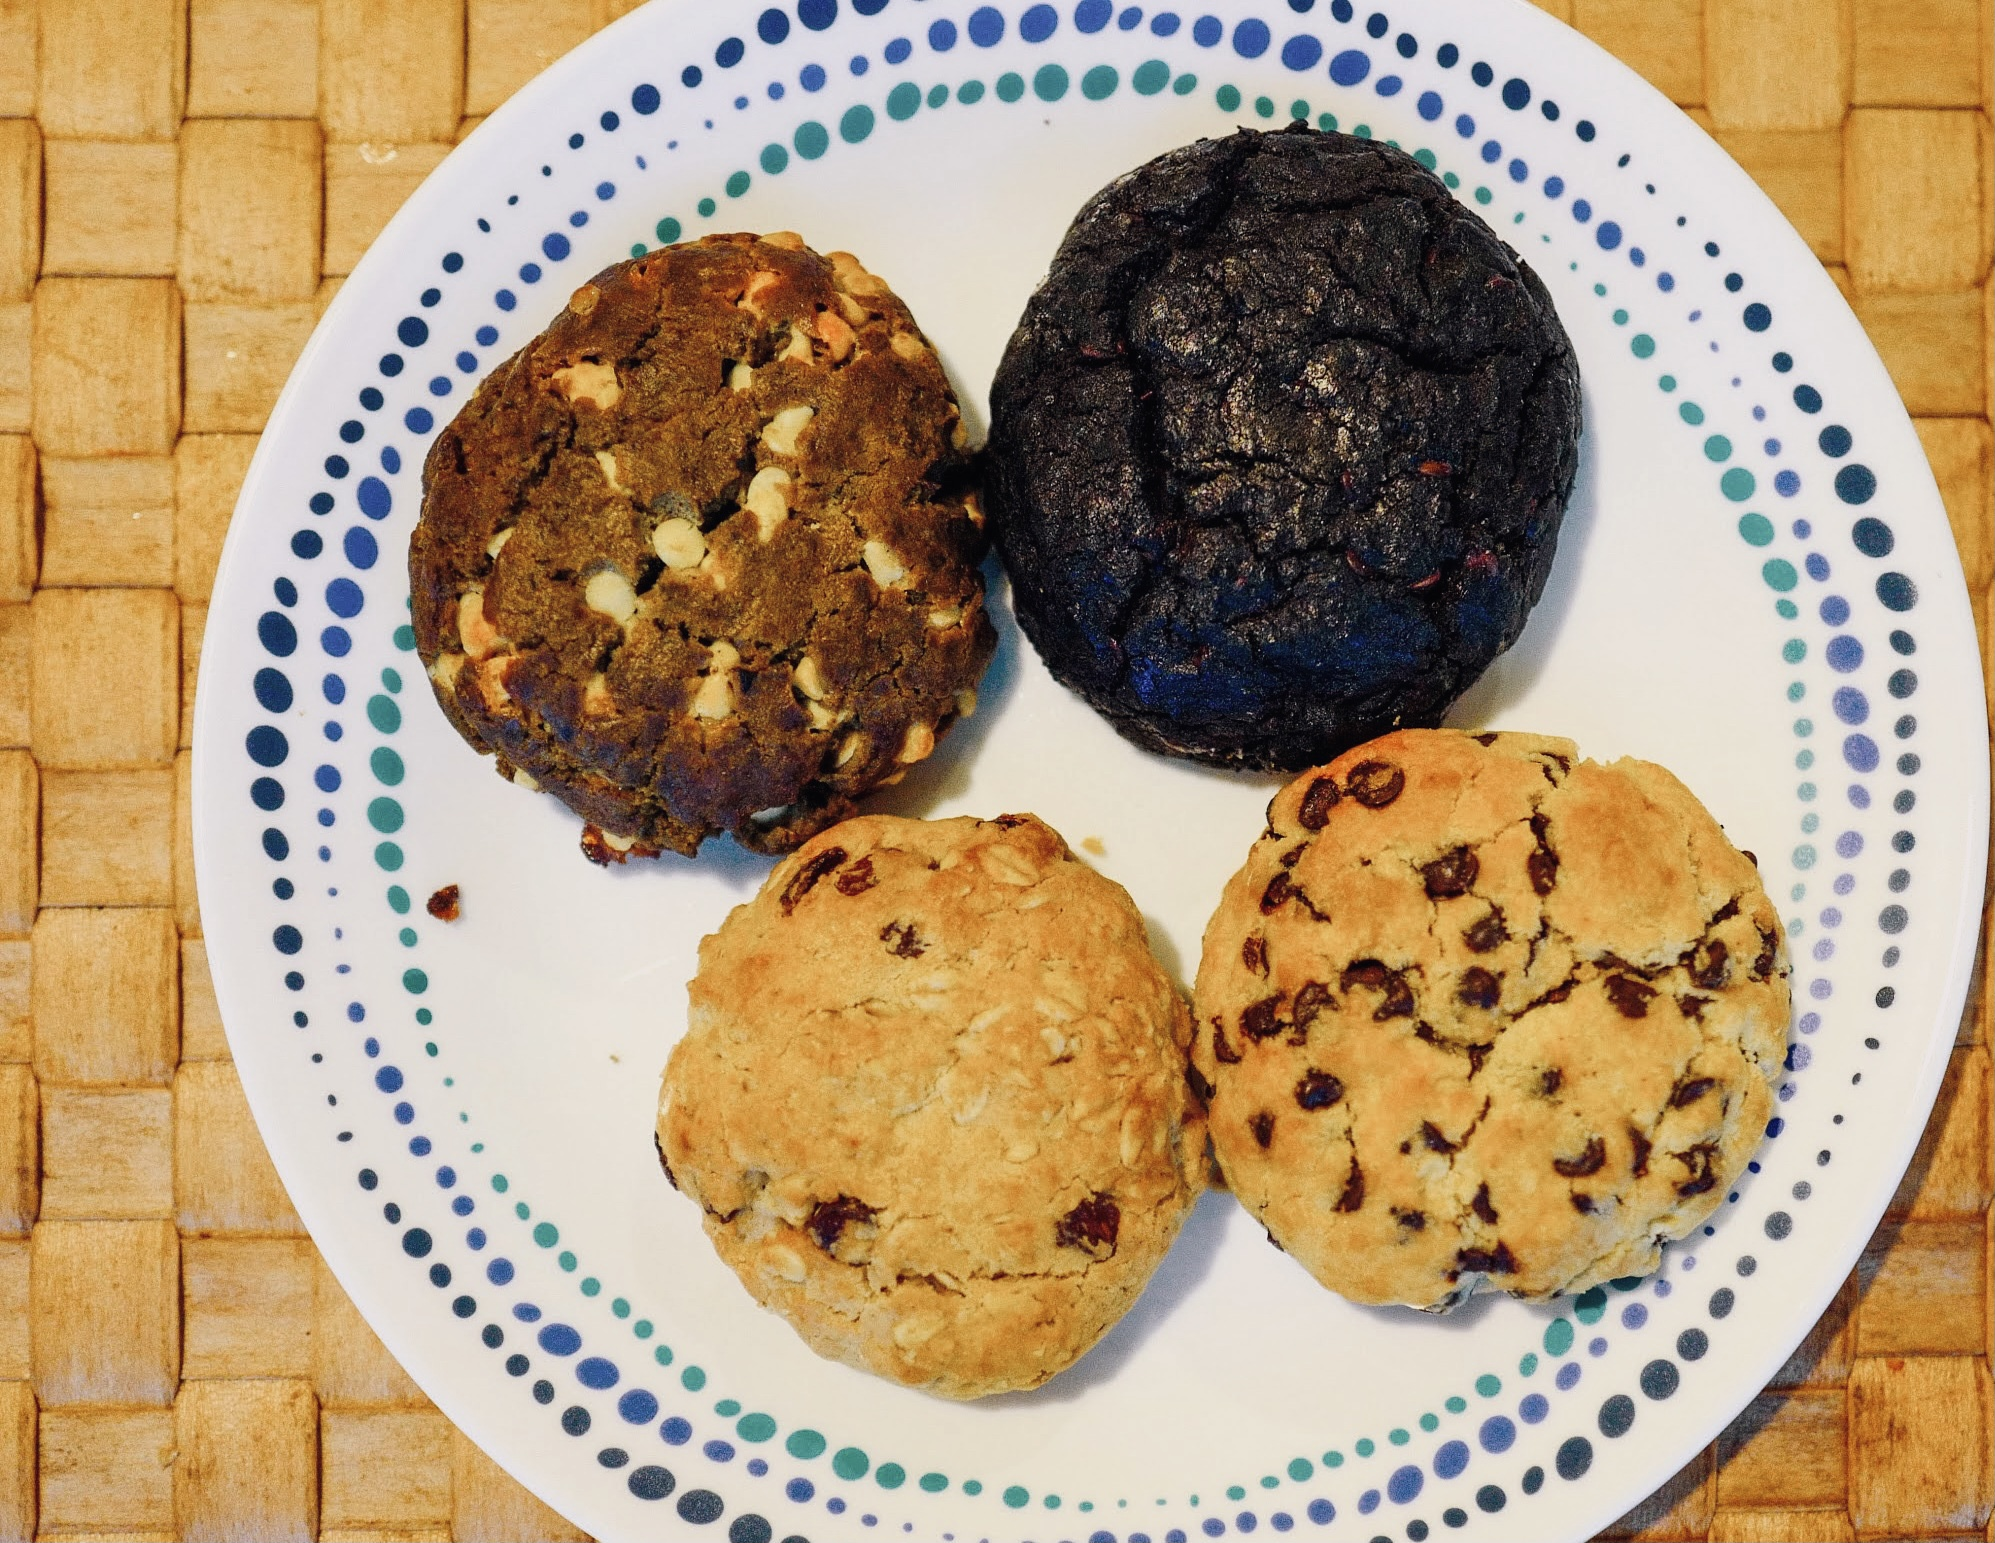 Creofe Baked Goods: Levain-style Chocolate Chip Cookies